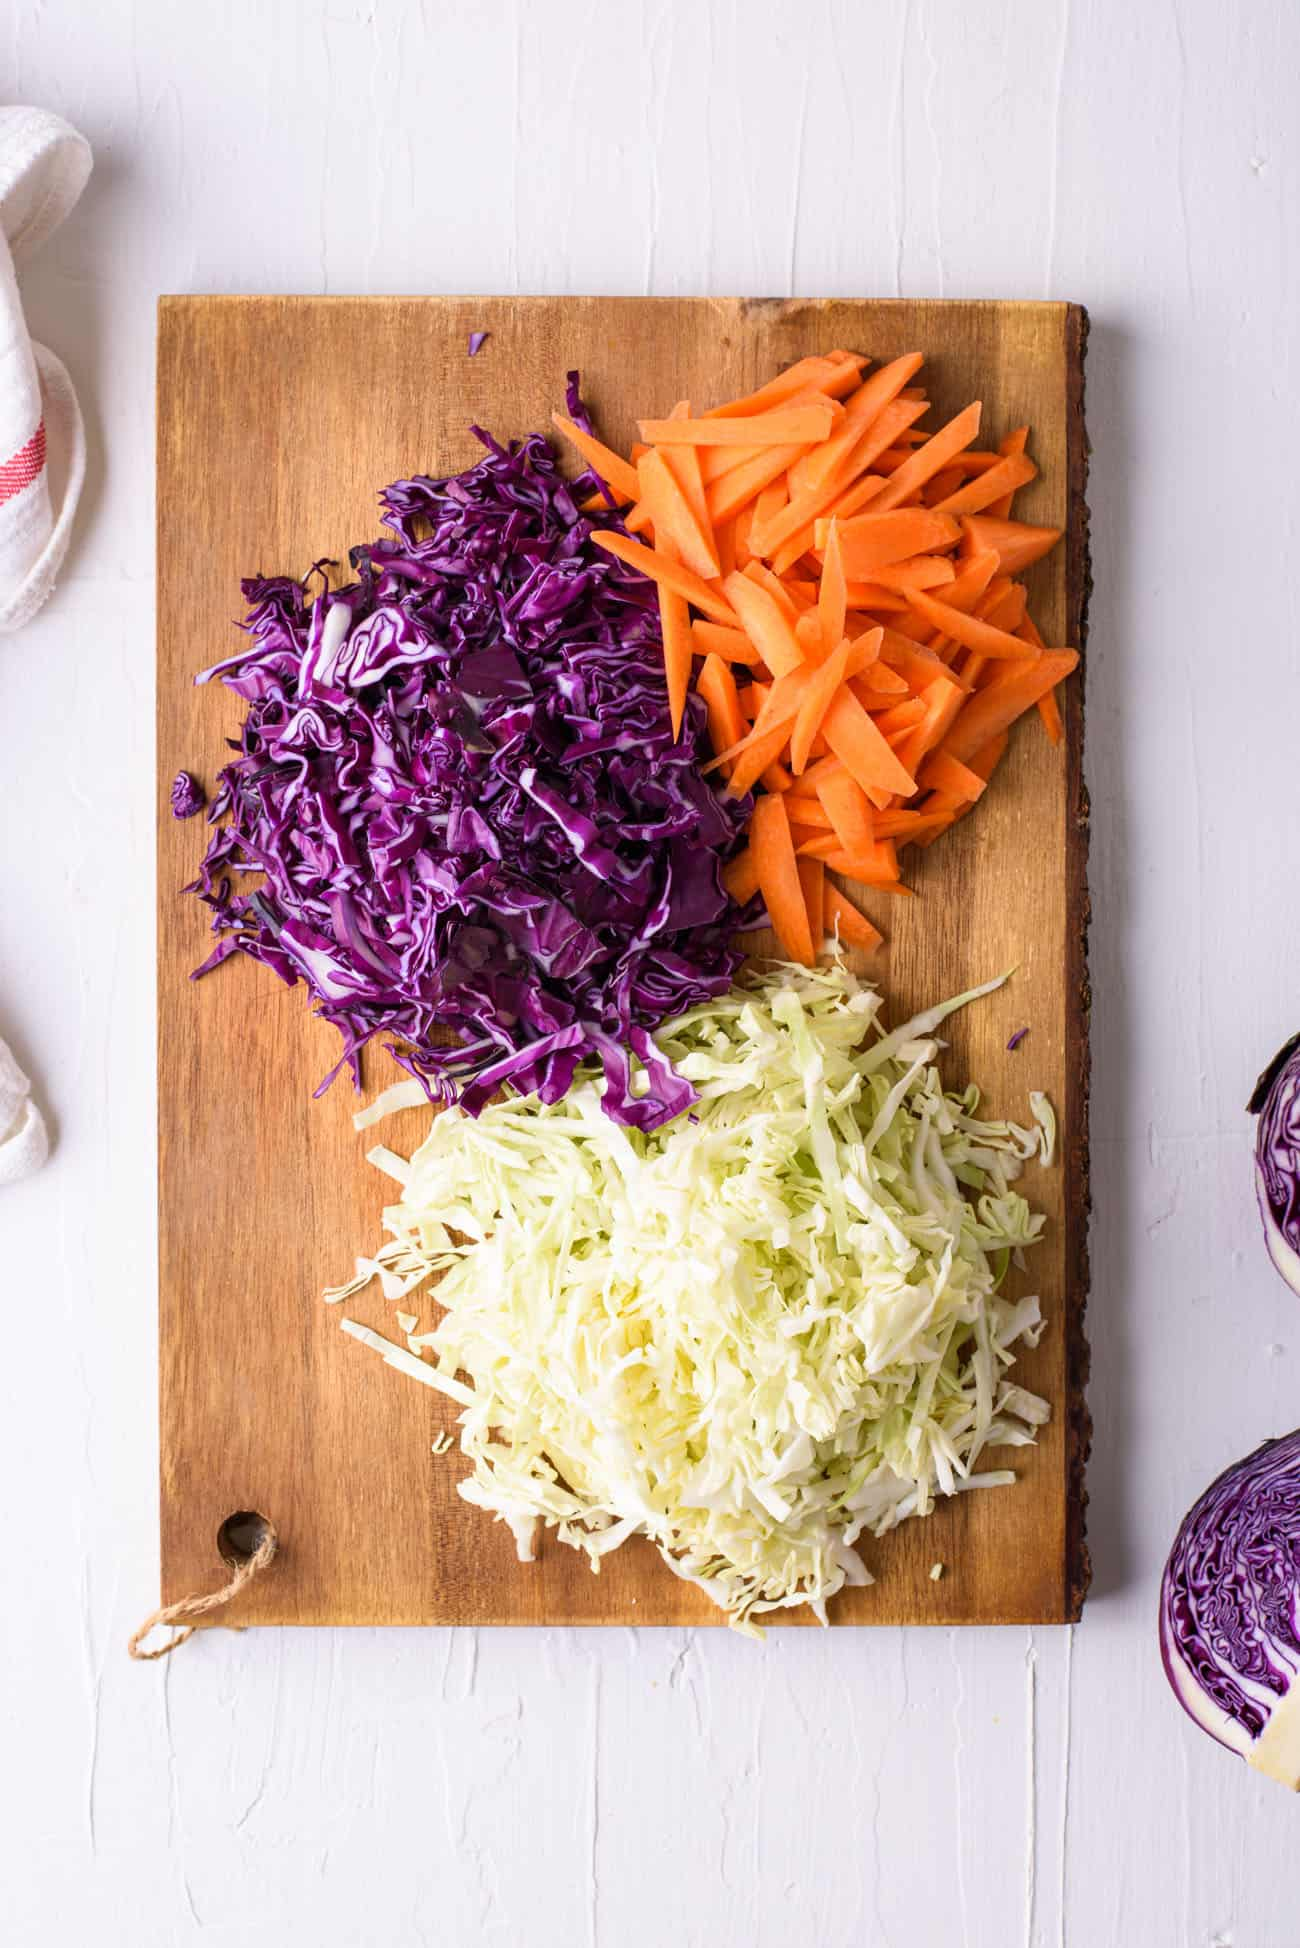 Shredded green and purple cabbage, and carrot matchsticks, on a wooden cutting board on a white table